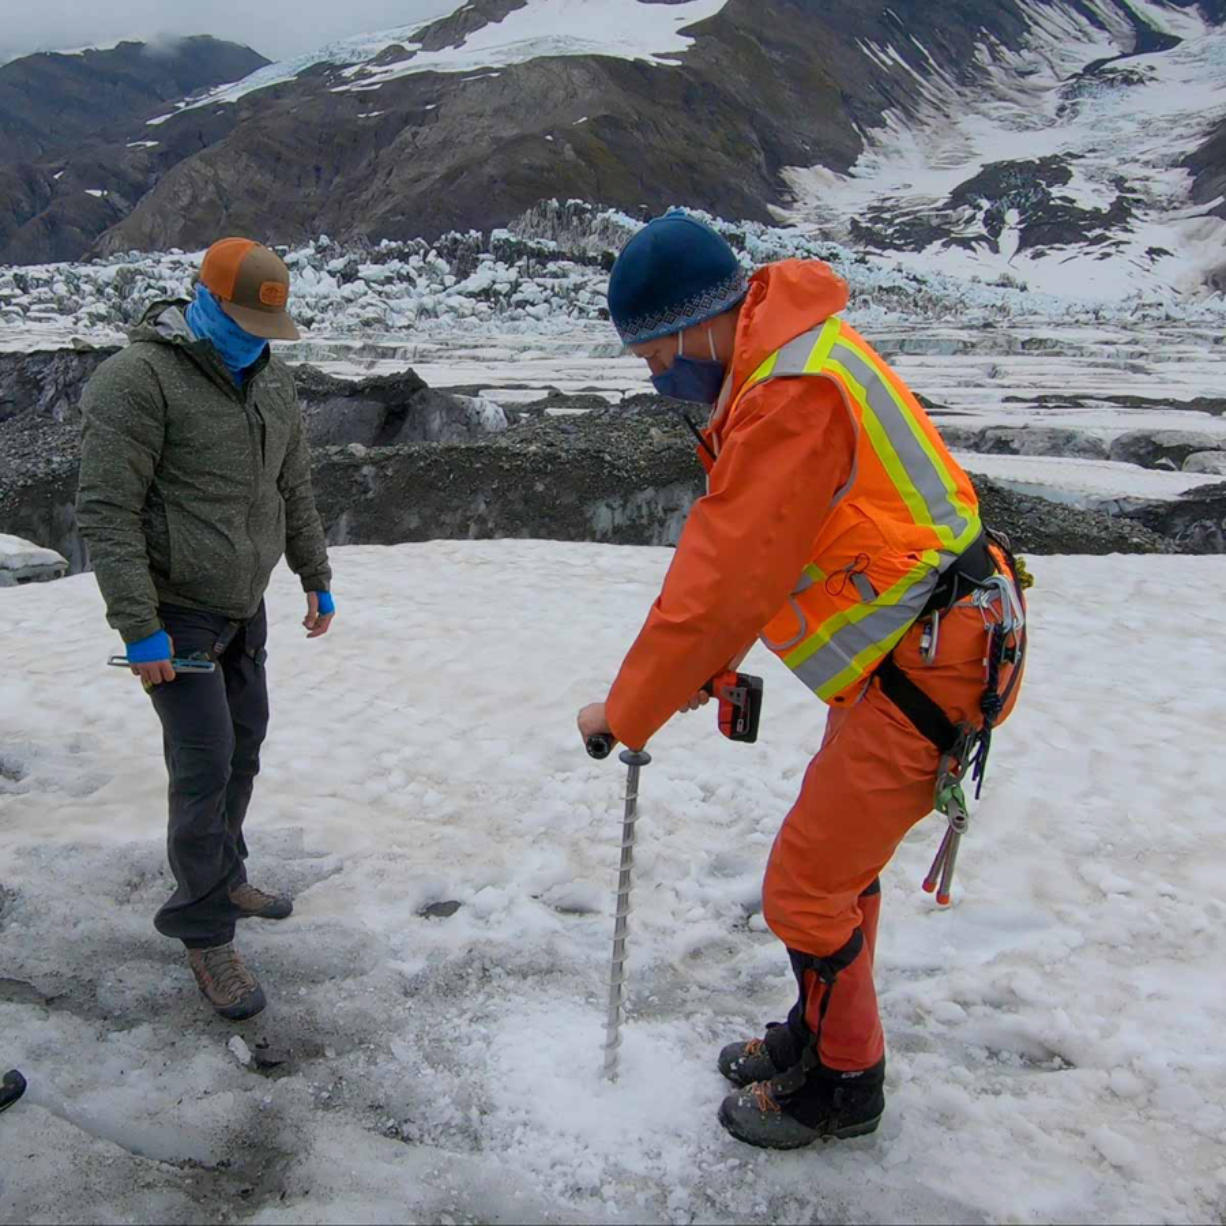 Thomas Otheim, left, a lab technician at Boise State University, and Tim Bartholomaus, a University of Idaho glaciologist, perform research on the Turner Glacier in Alaska.